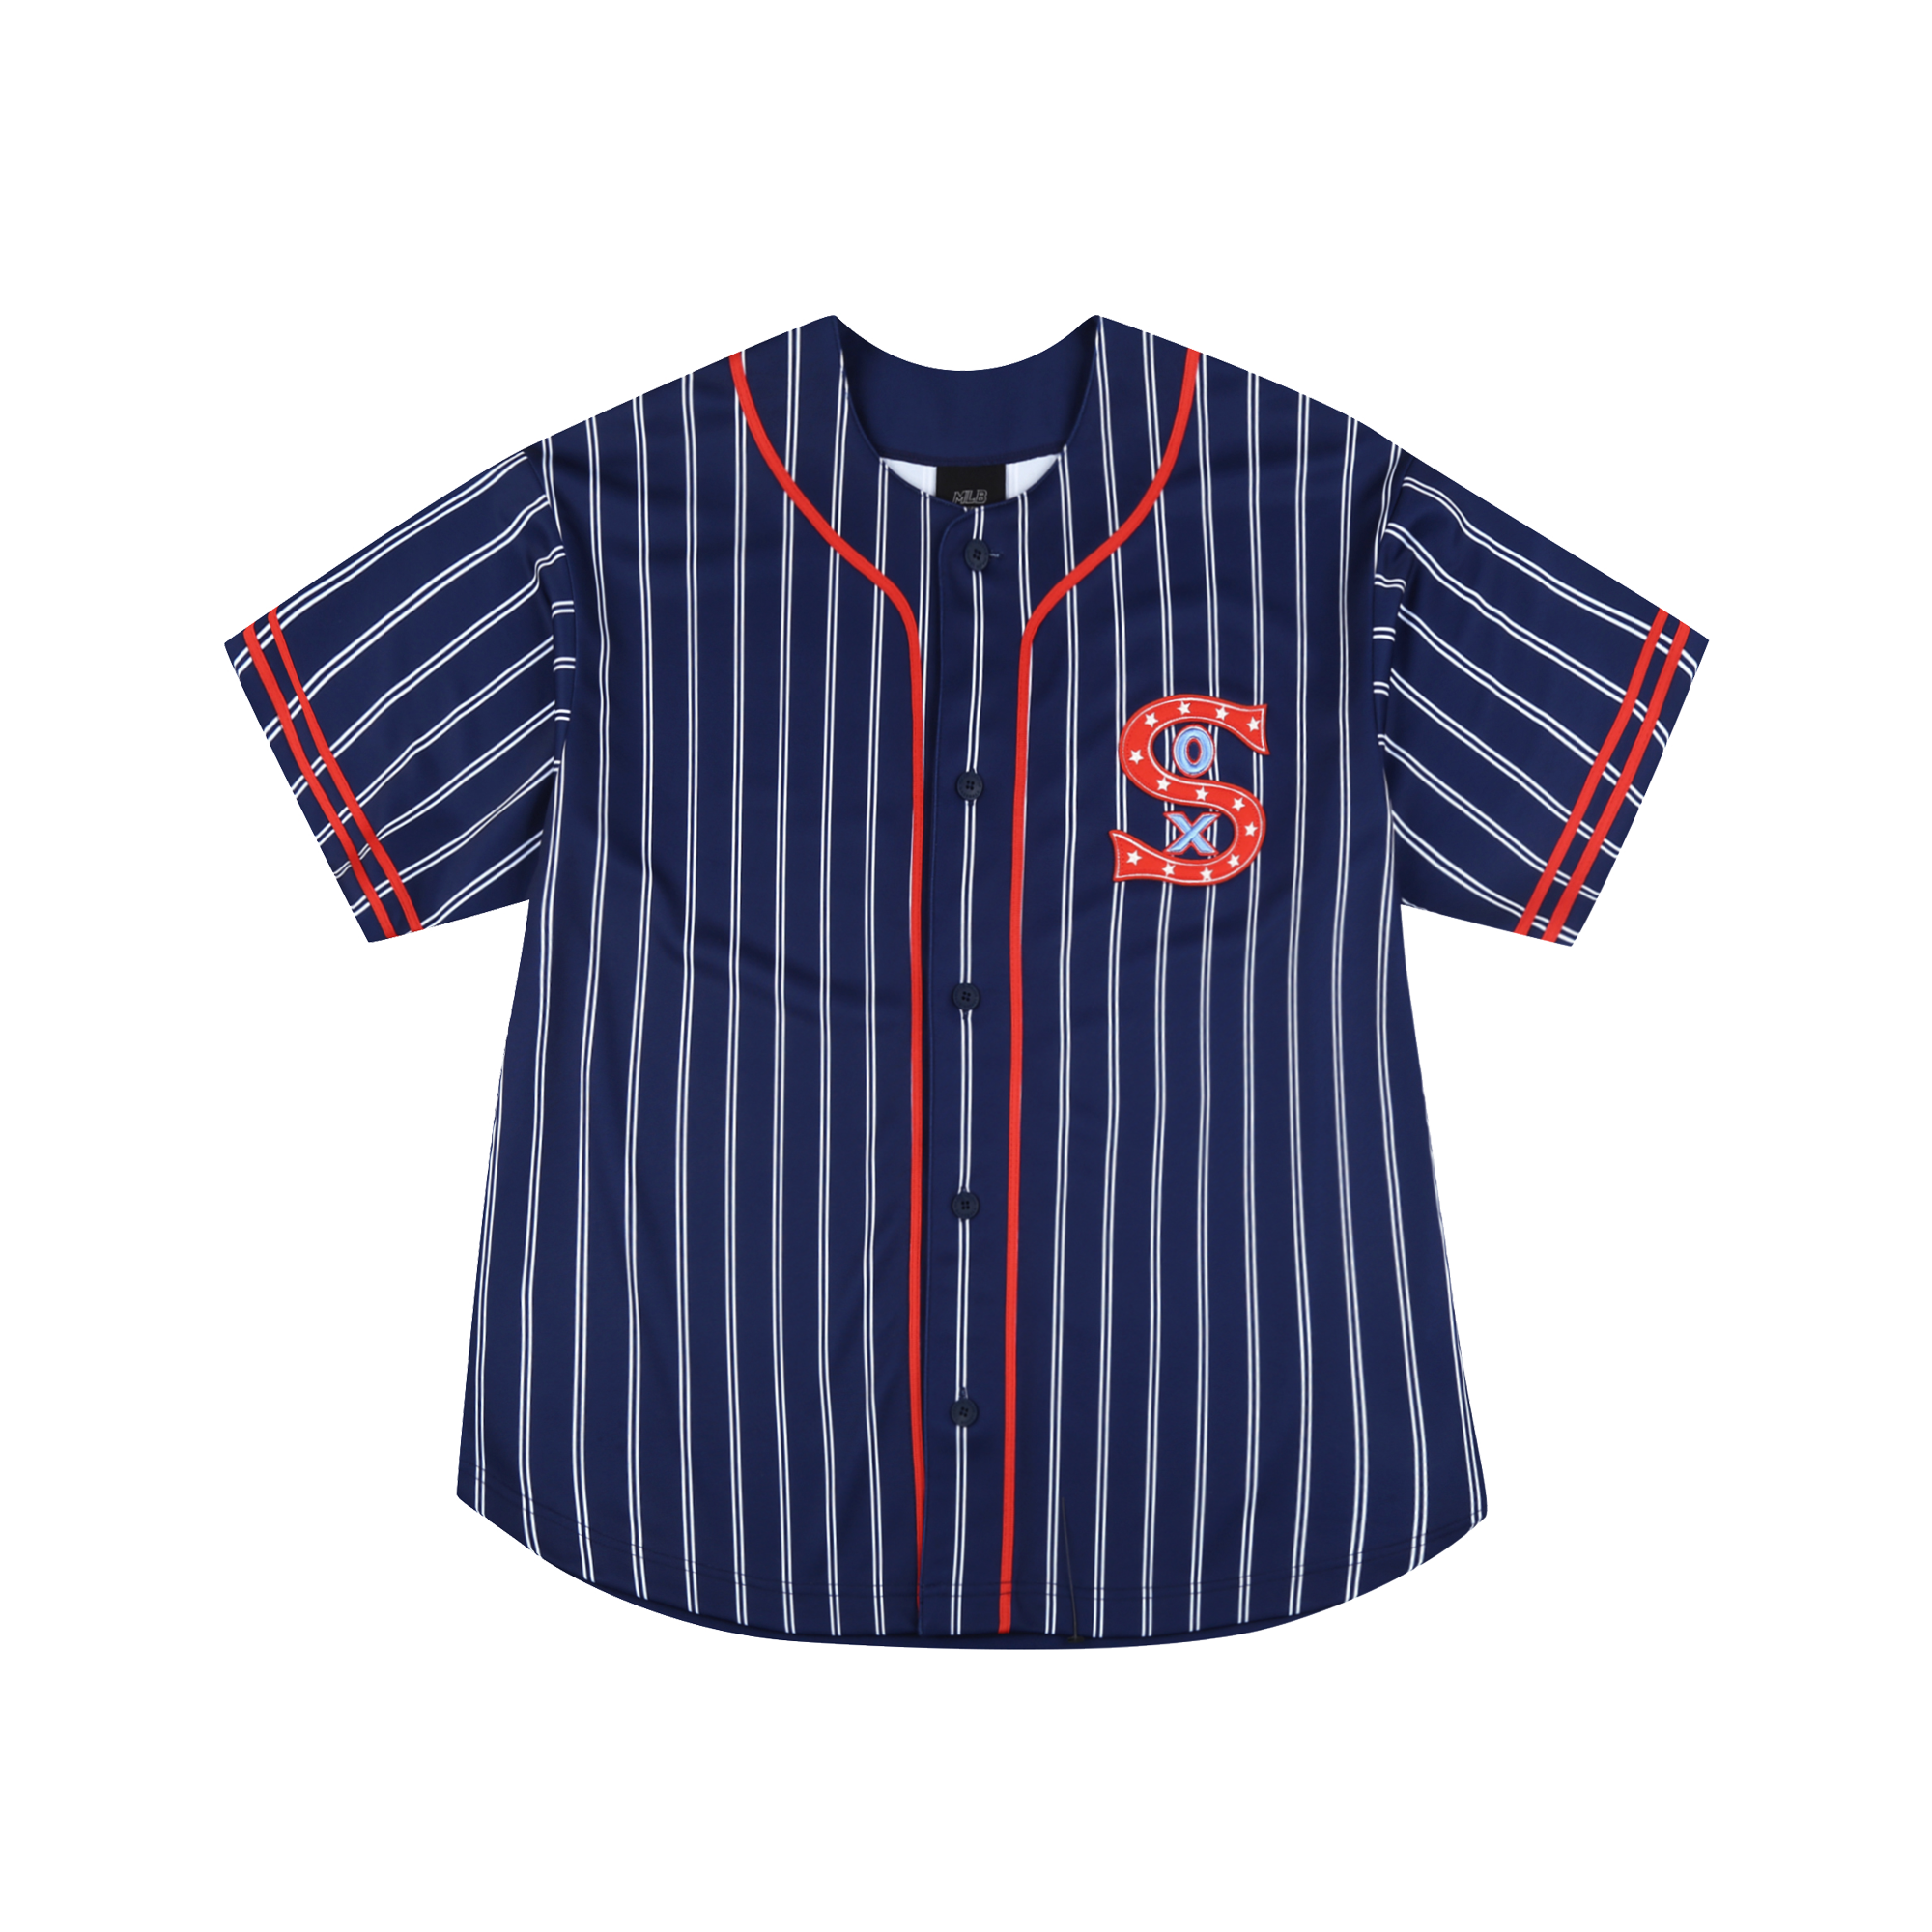 CHICAGO WHITE SOX COOPERS AUTHENTIC BASEBALL JERSEY